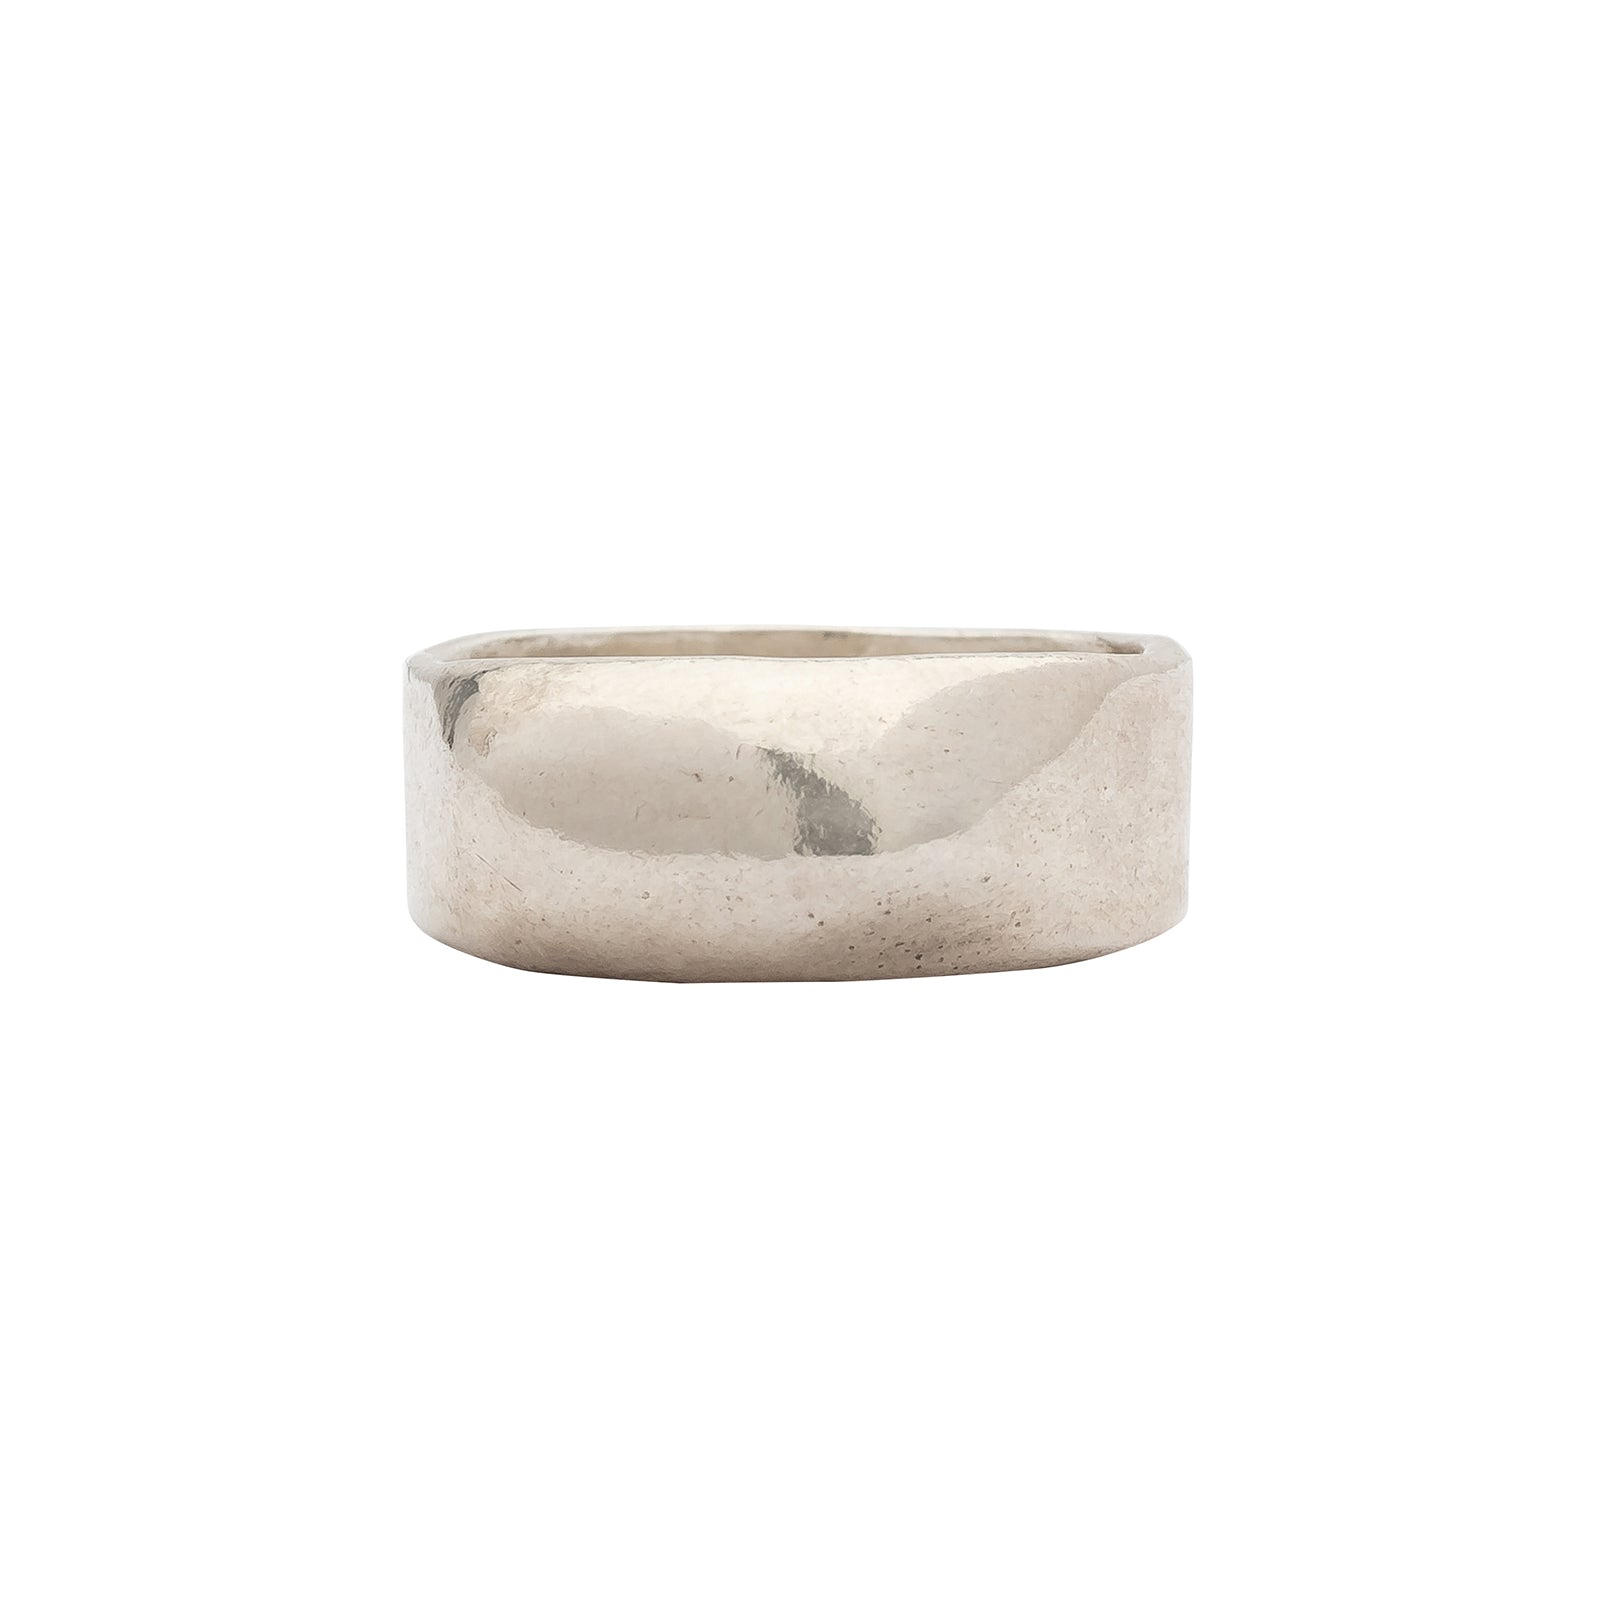 Ariana Boussard-Reifel Maya Ring - Silver - Rings - Broken English Jewelry